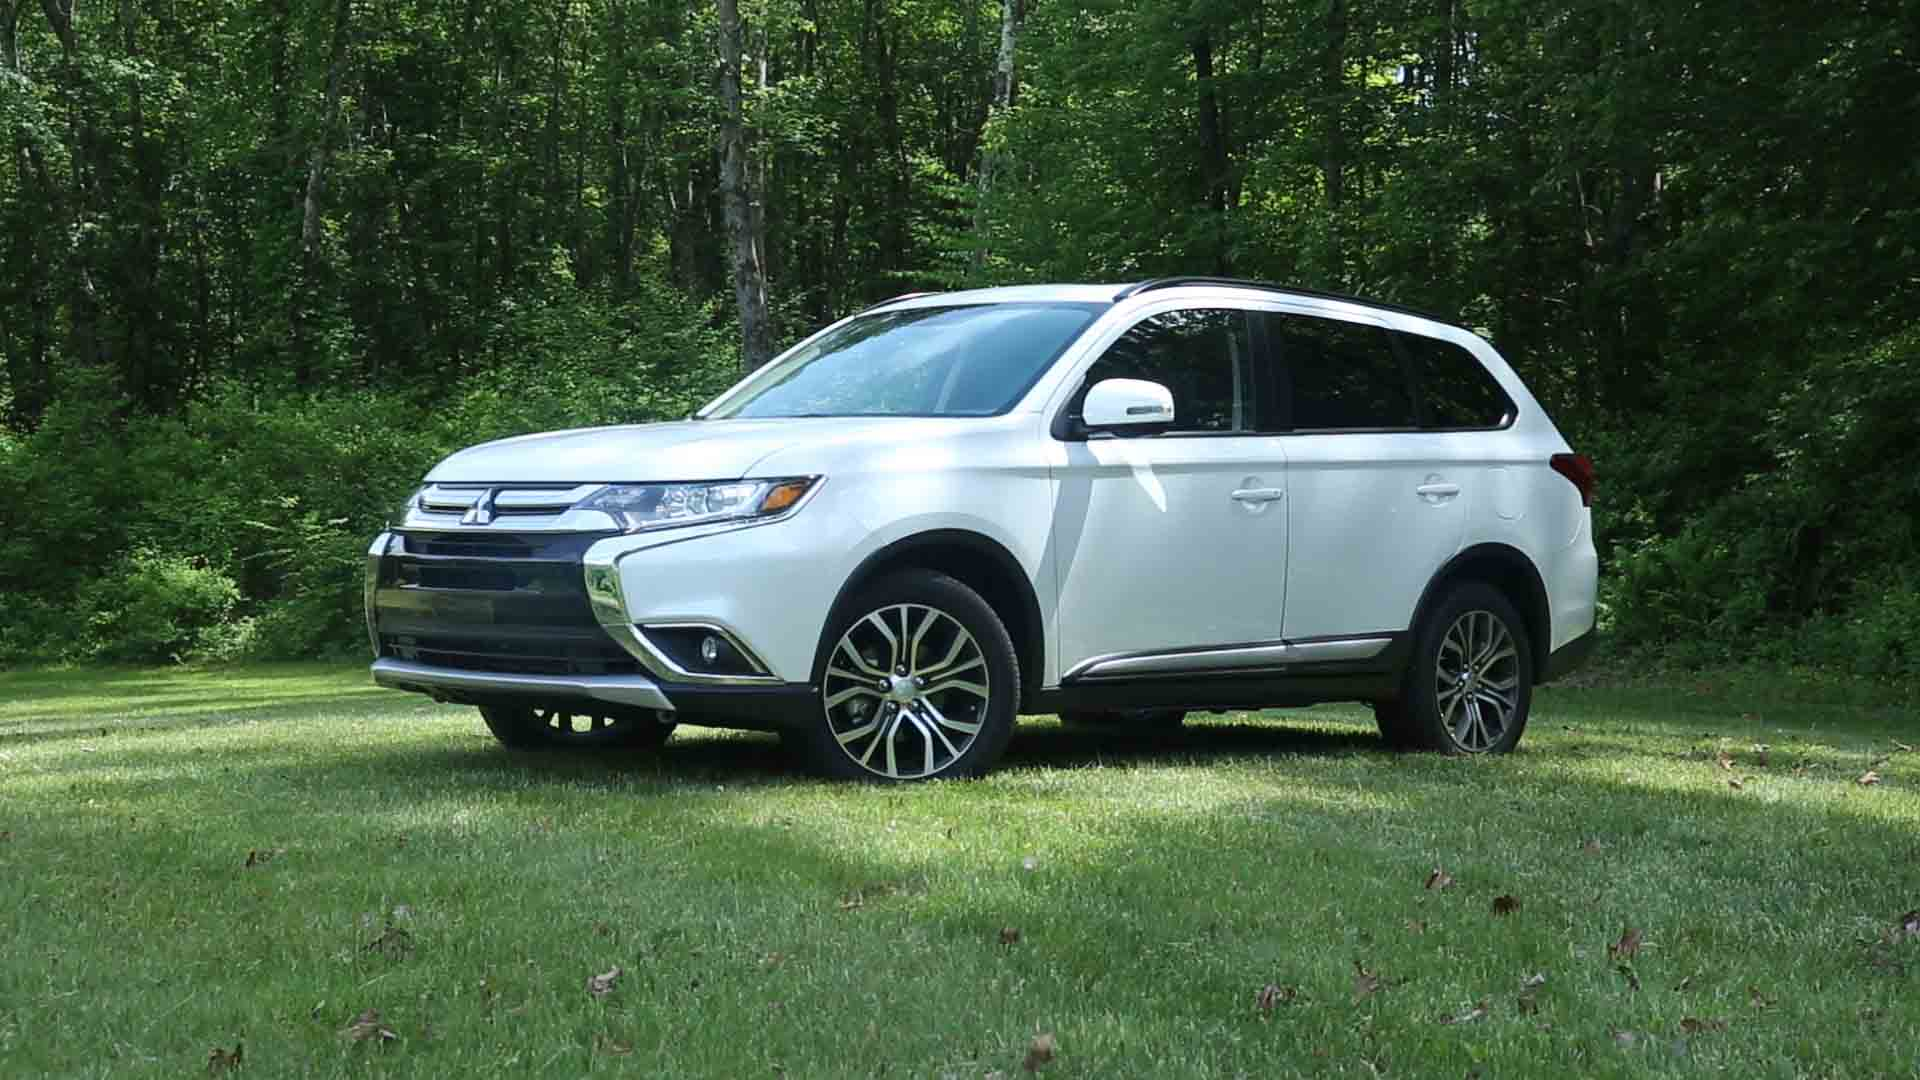 2016 mitsubishi outlander pricing for sale edmunds autos. Black Bedroom Furniture Sets. Home Design Ideas